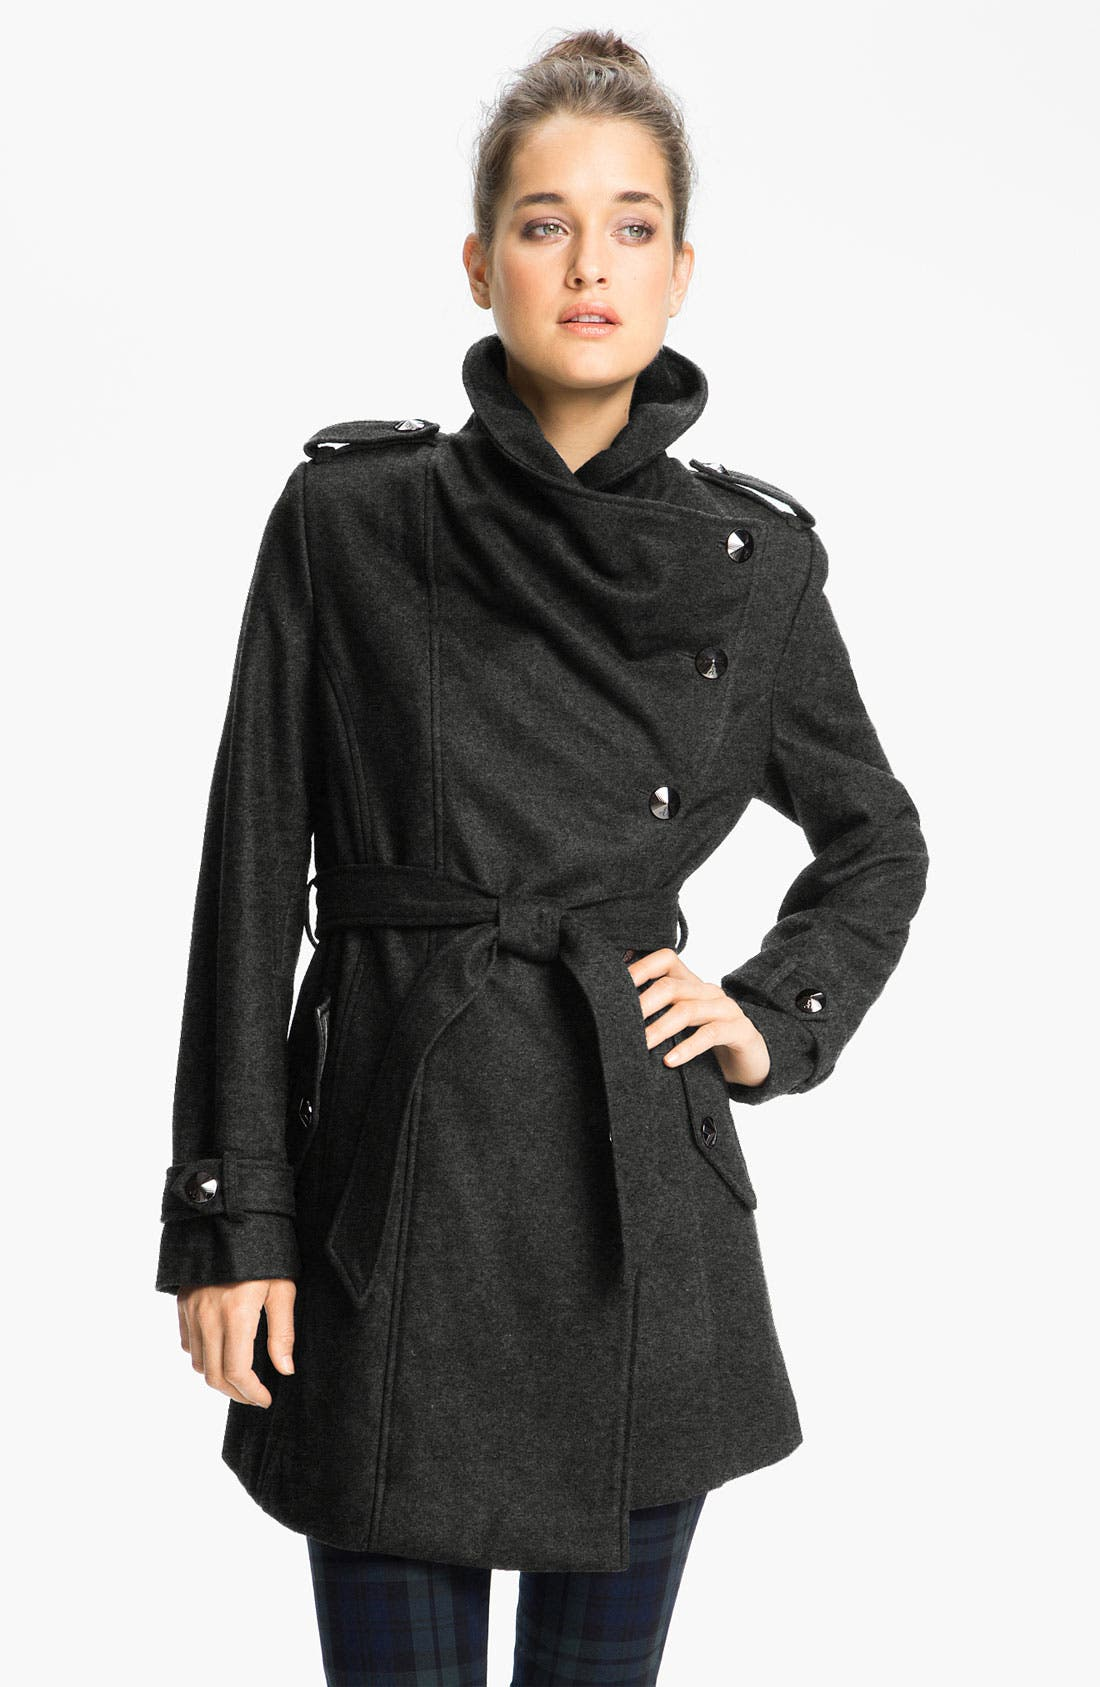 Alternate Image 1 Selected - Sam Edelman Asymmetrical Belted Coat (Online Exclusive)